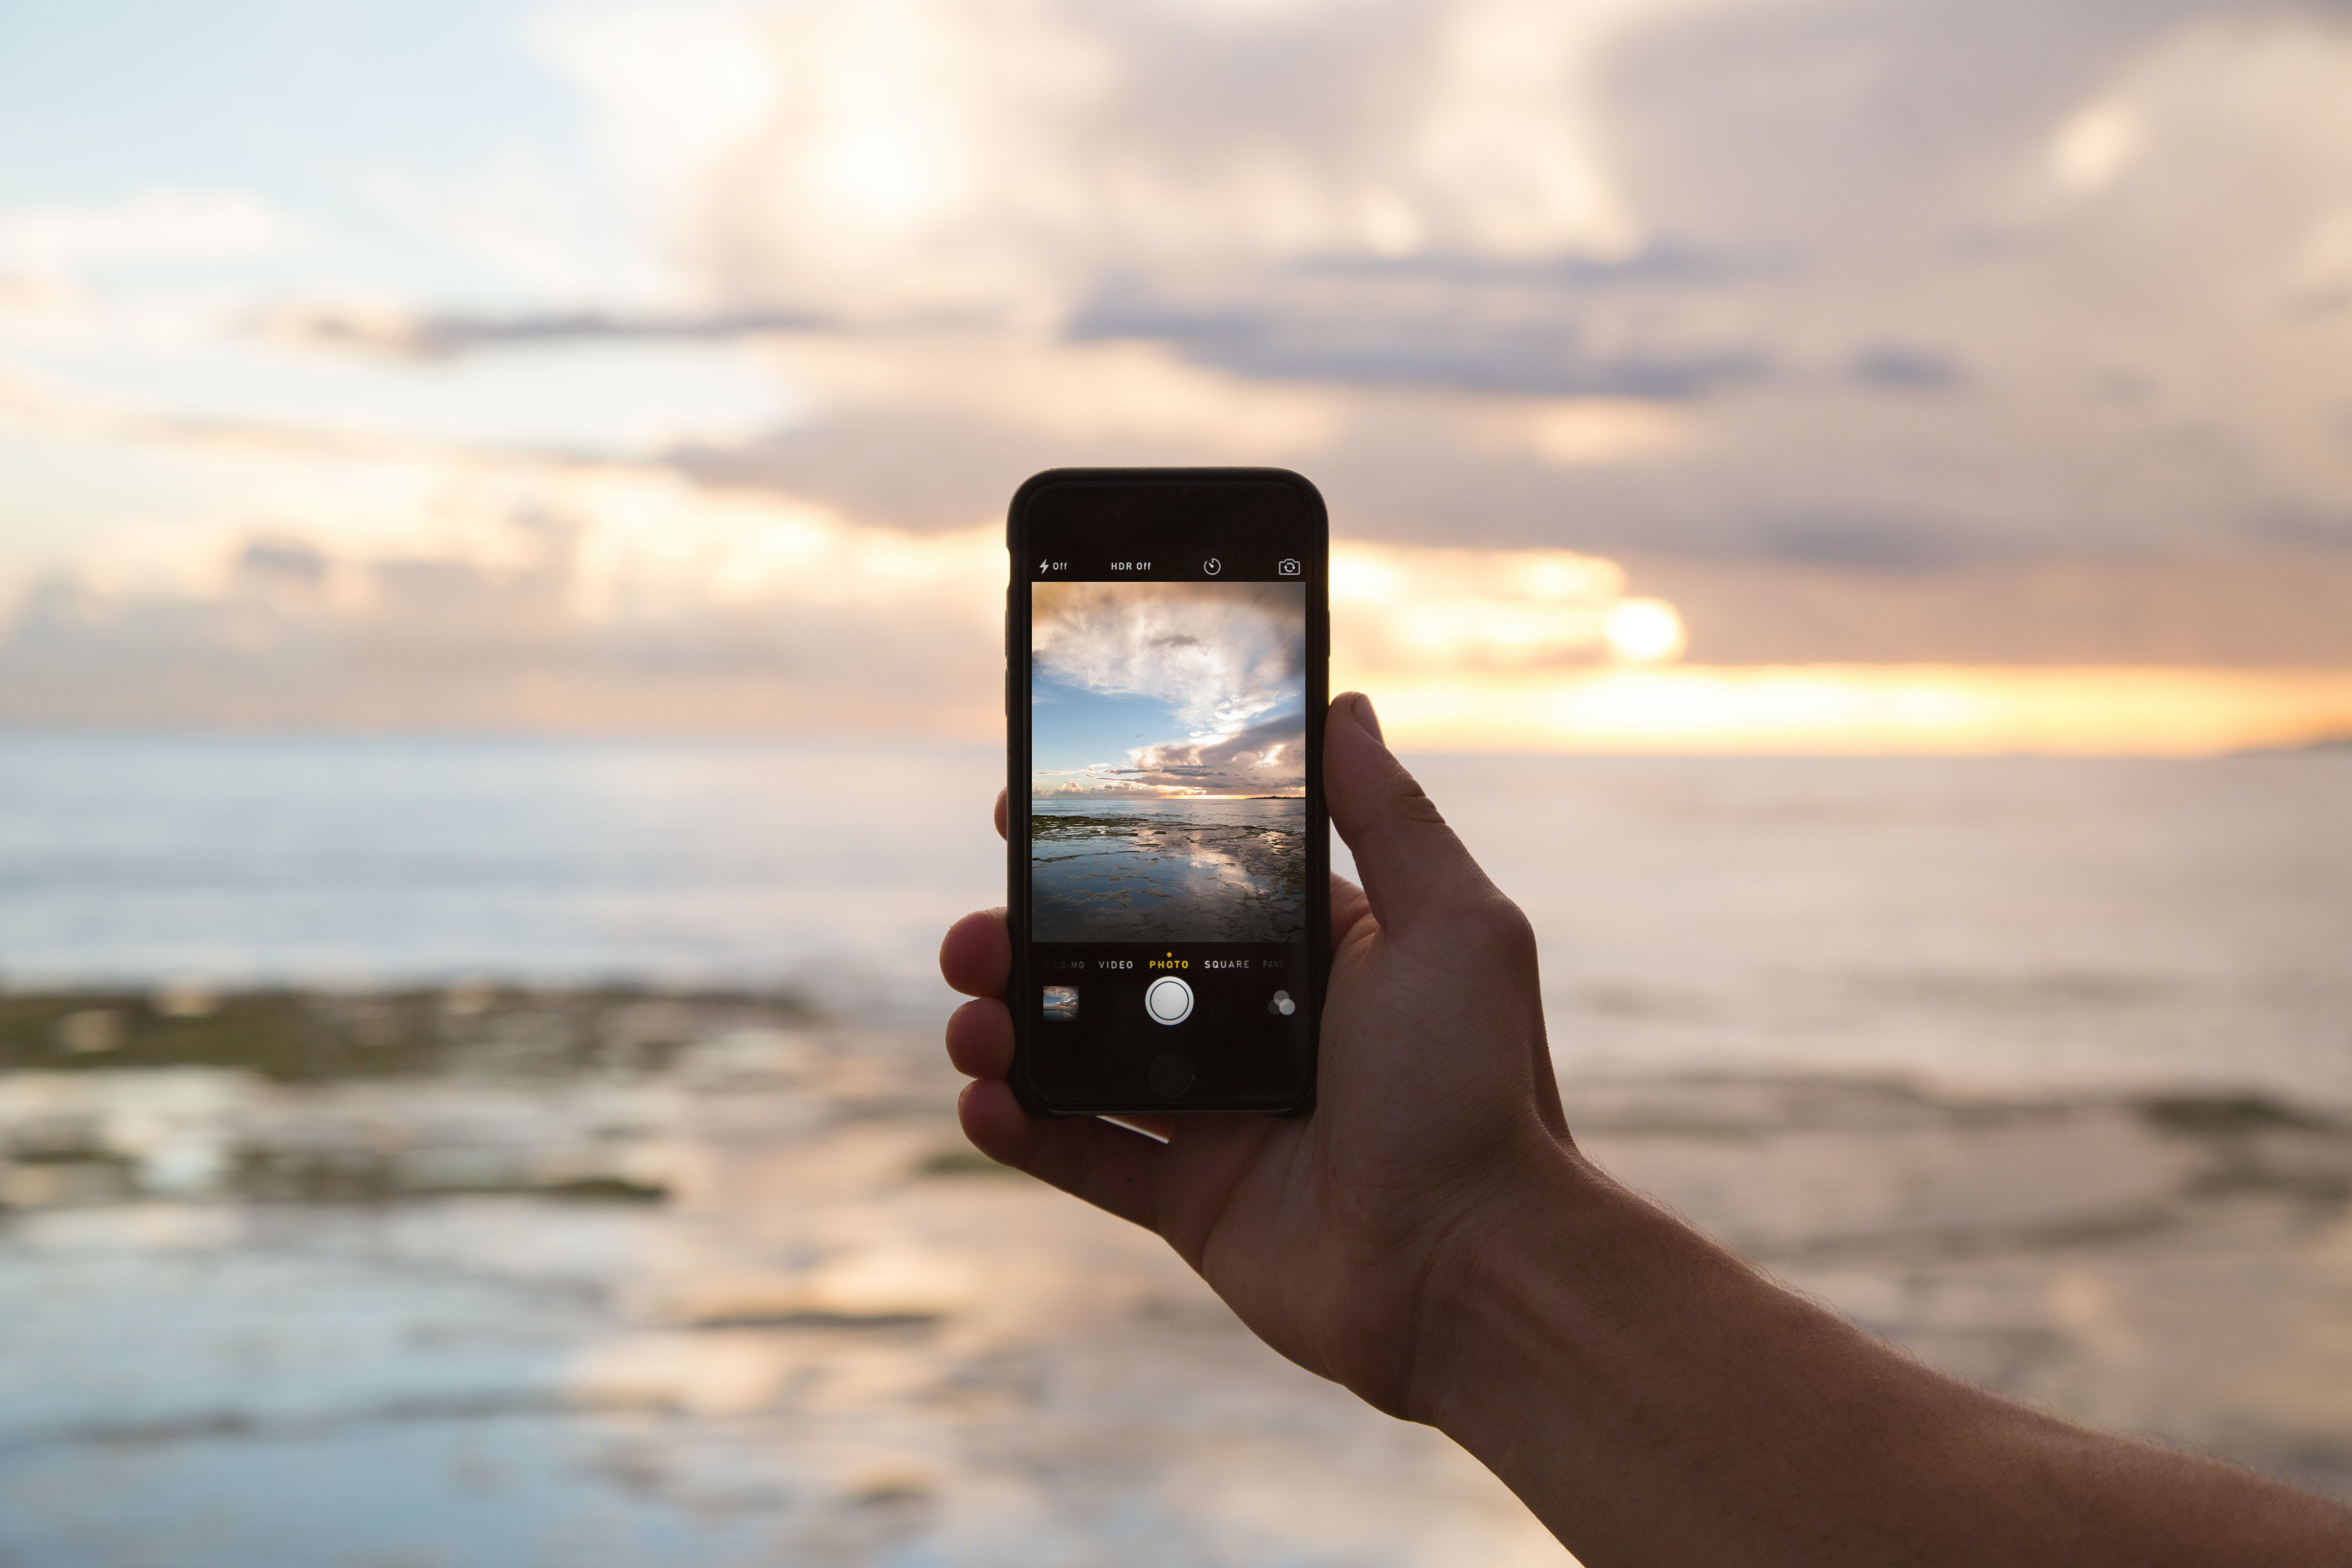 A hand holding out an iphone for a landscape picture of the evening sky and the setting sun